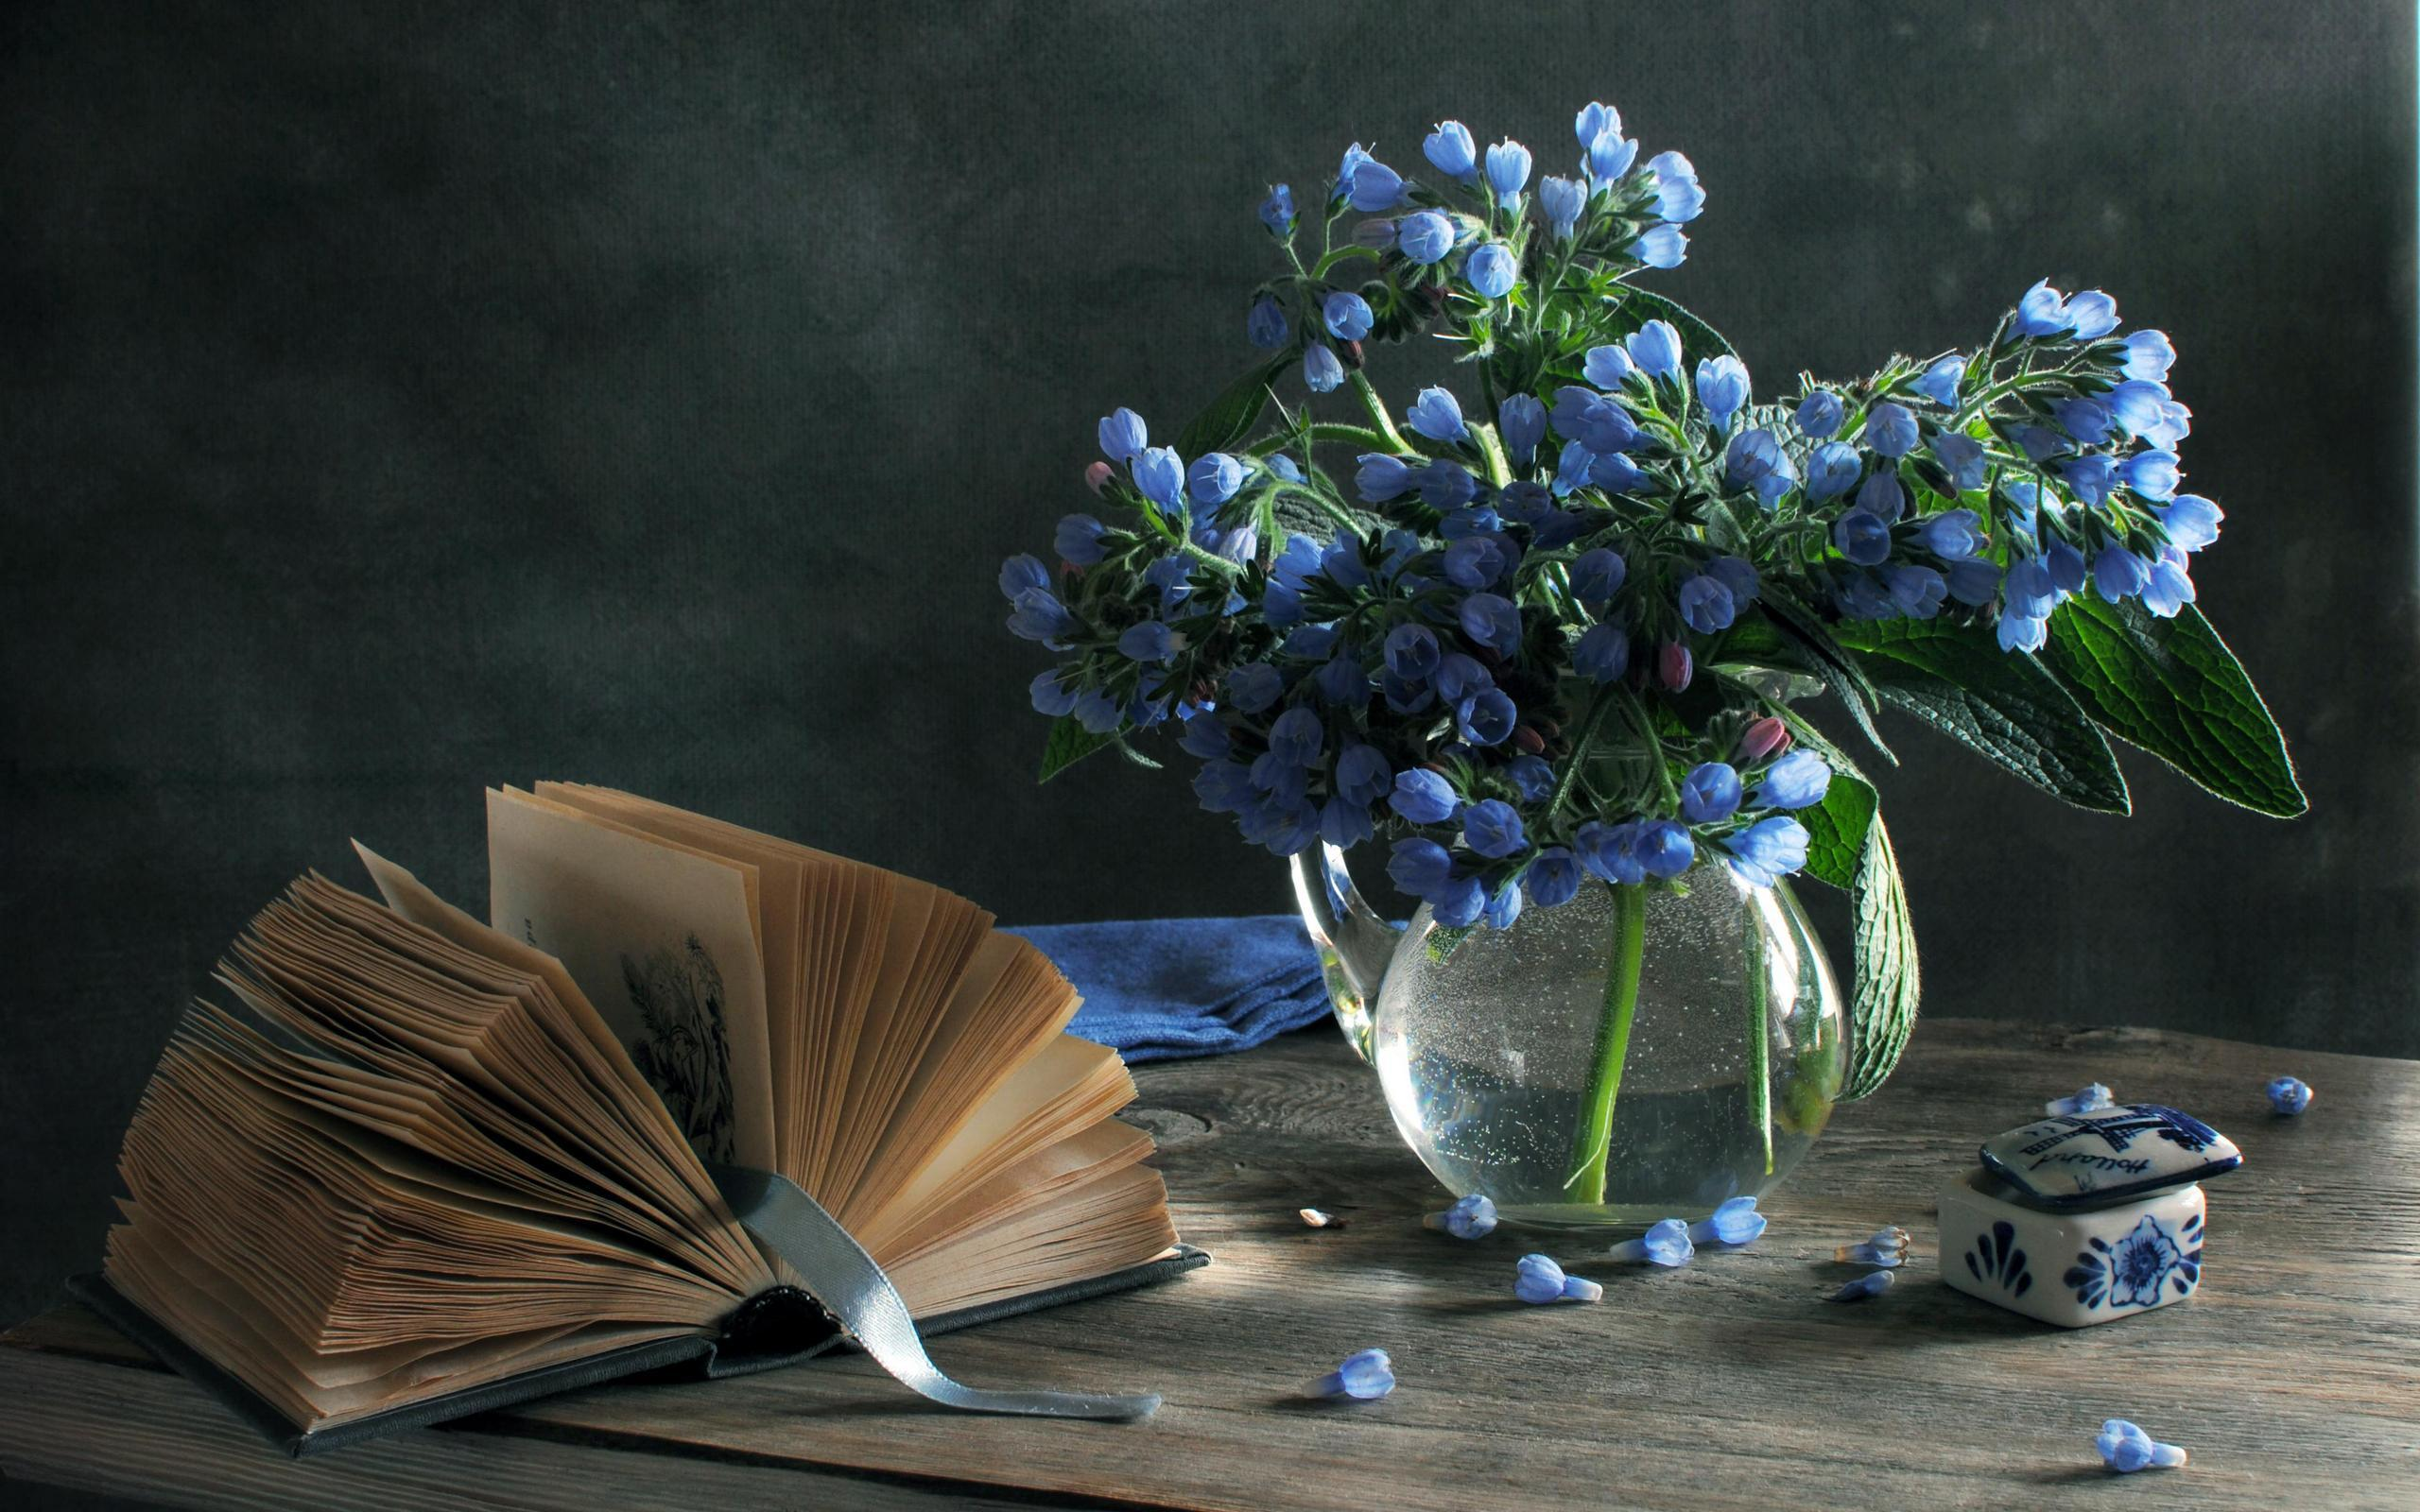 Wallpaper still life vase flowers blue spring book box 2560x1600